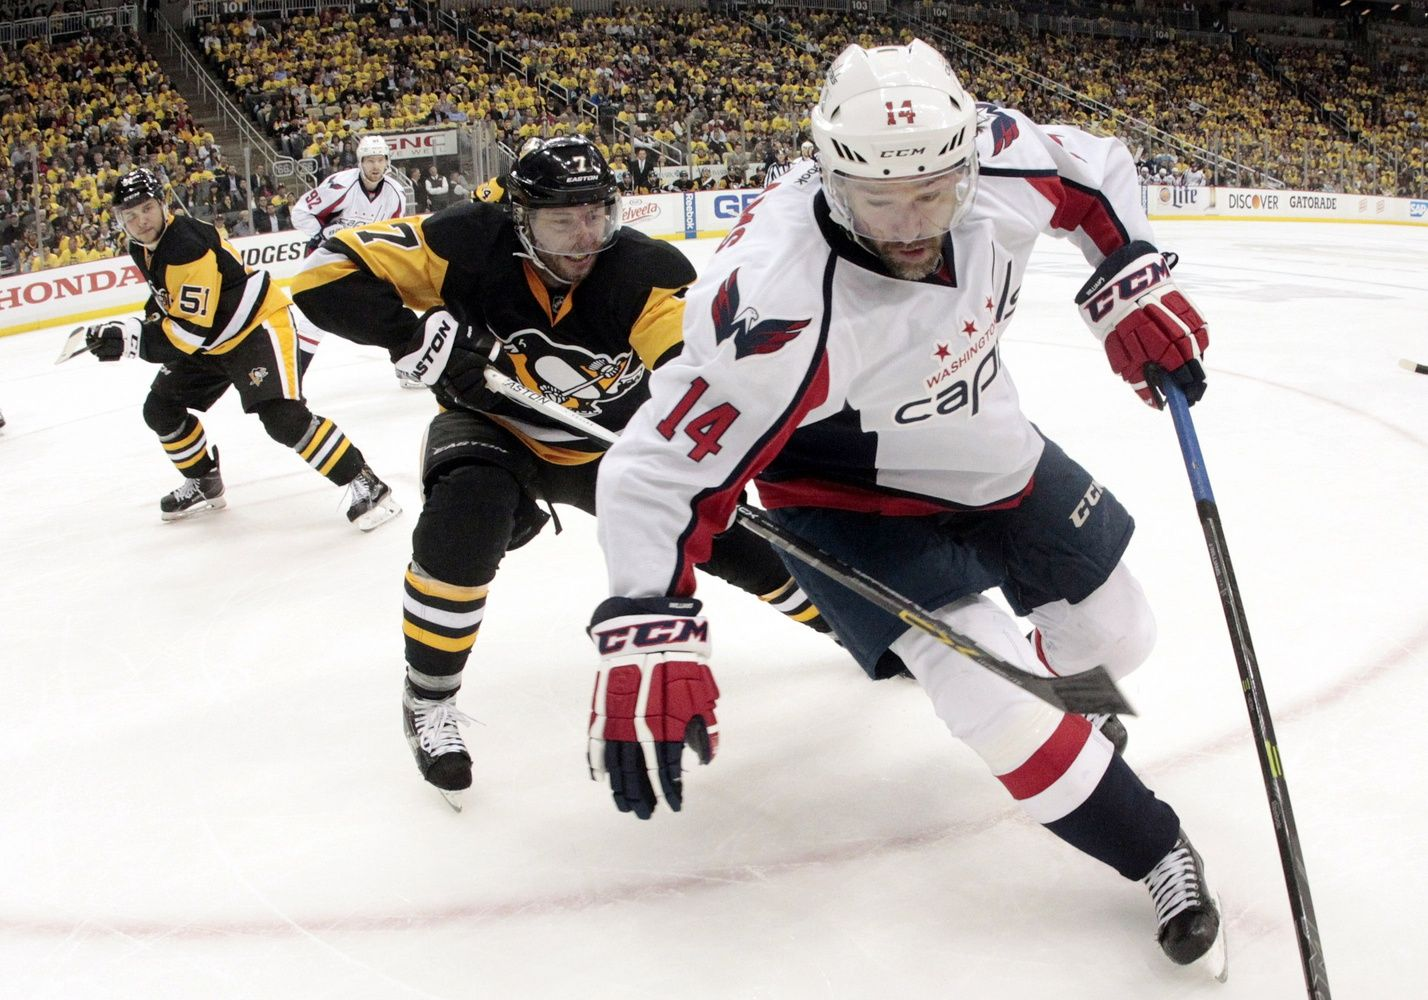 """The Capitals signed free-agent right wing Justin Williams to a two-year contract to help get them over the mountainous hump of the second round of the playoffs. On Thursday, two days after the Capitals saw their season ended by the Pittsburgh Penguins in Game 6 of the second round of the playoffs, the Caps' 34-year-old veteran sugar-coated nothing. """"Listen, it was a failure,"""" Williams said."""